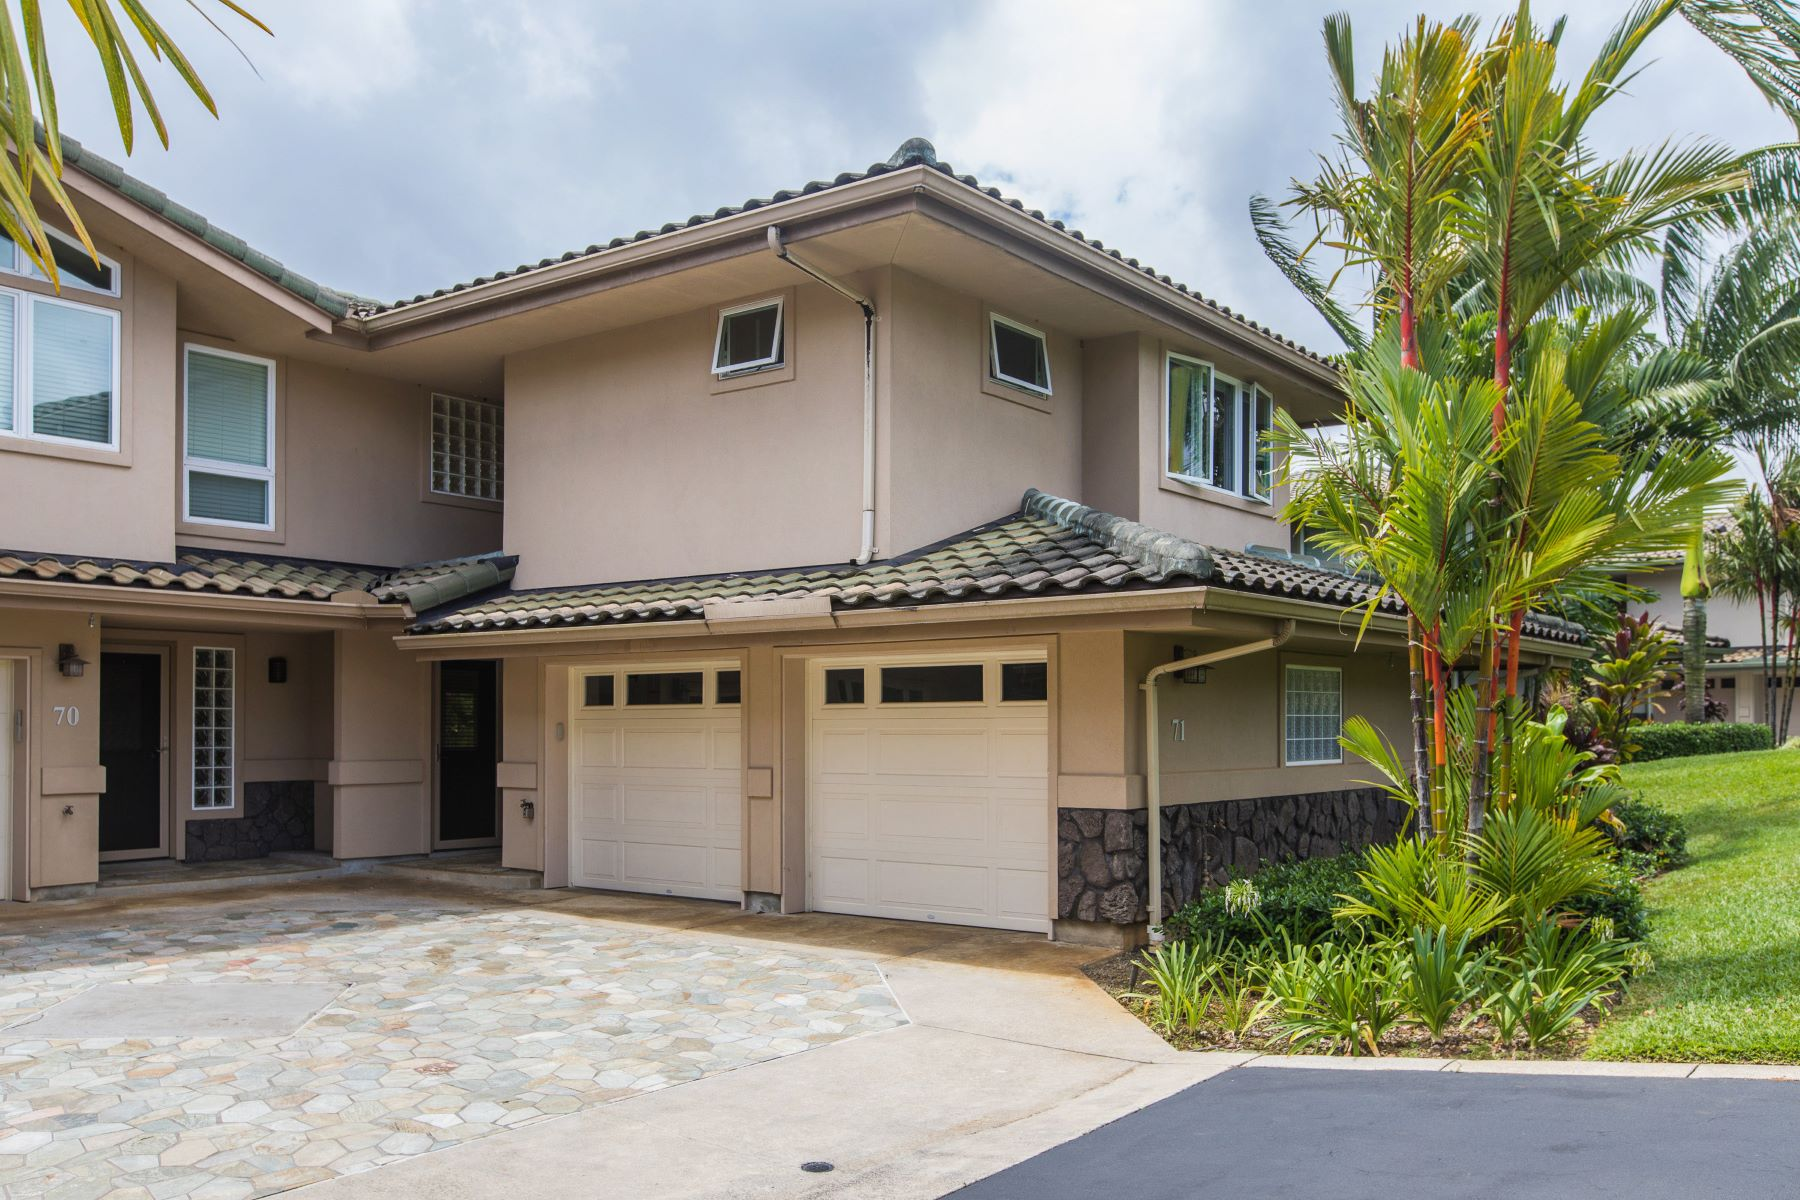 Кондоминиум для того Продажа на Beautiful, Modern 2 Bedroom, 2 1/2 Bathroom Condominium on Kauai's North Shore 4100 Queen Emma Drive #71 Princeville, Гавайи, 96722 Соединенные Штаты